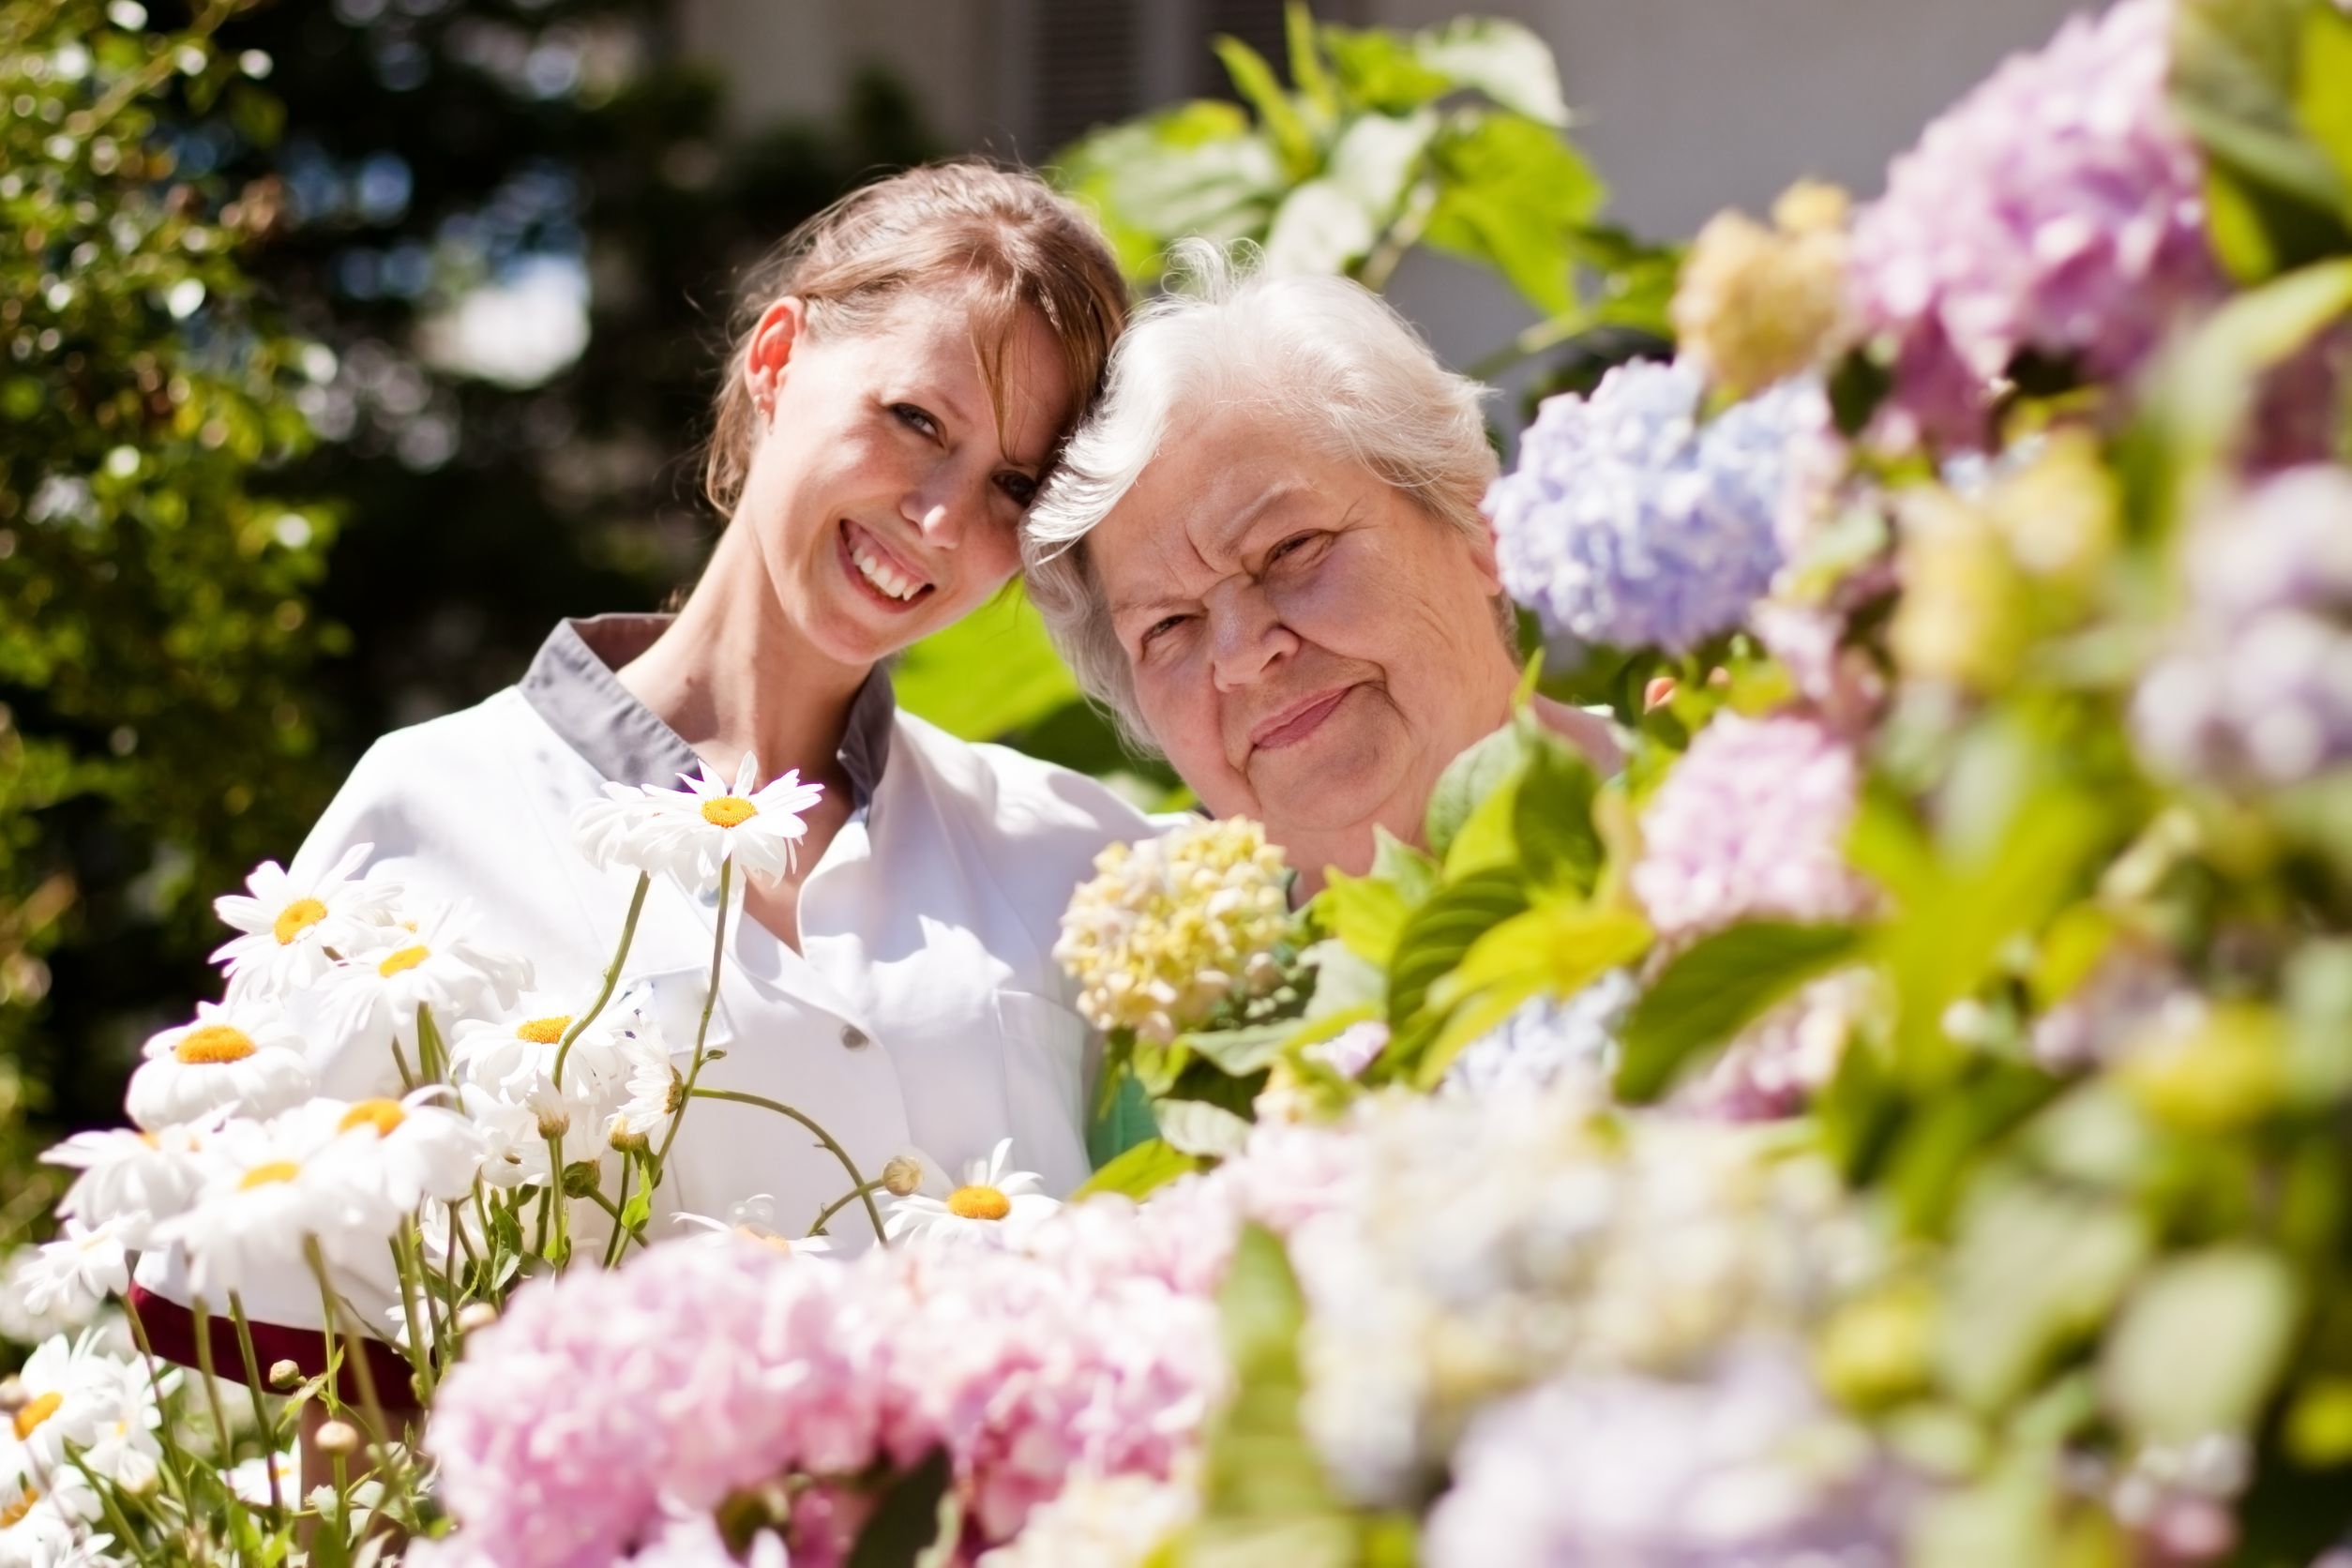 image of younger woman and older woman standing in a garden of flowers